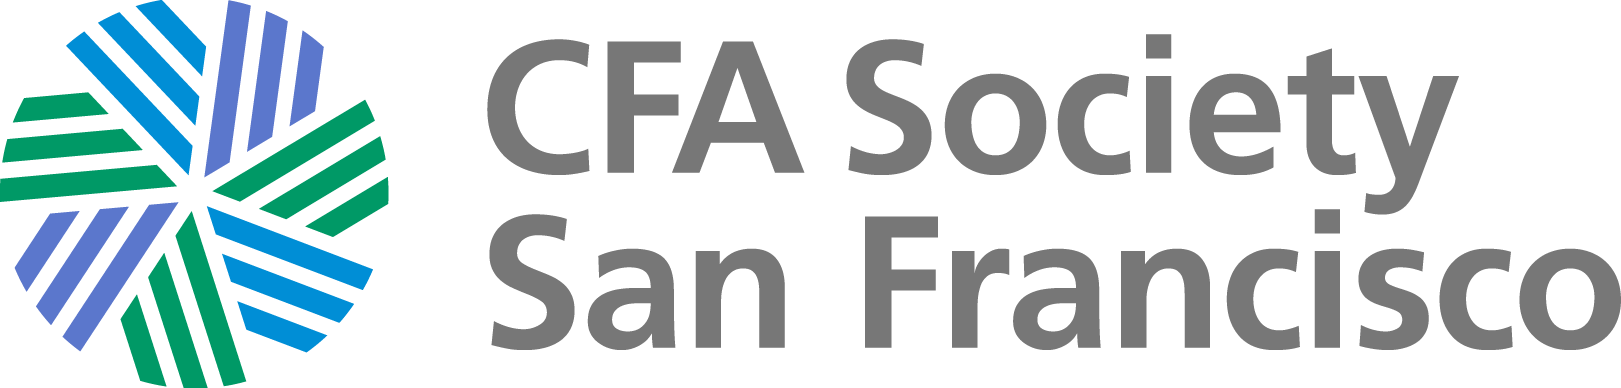 CFA Society San Francisco Career Center logo